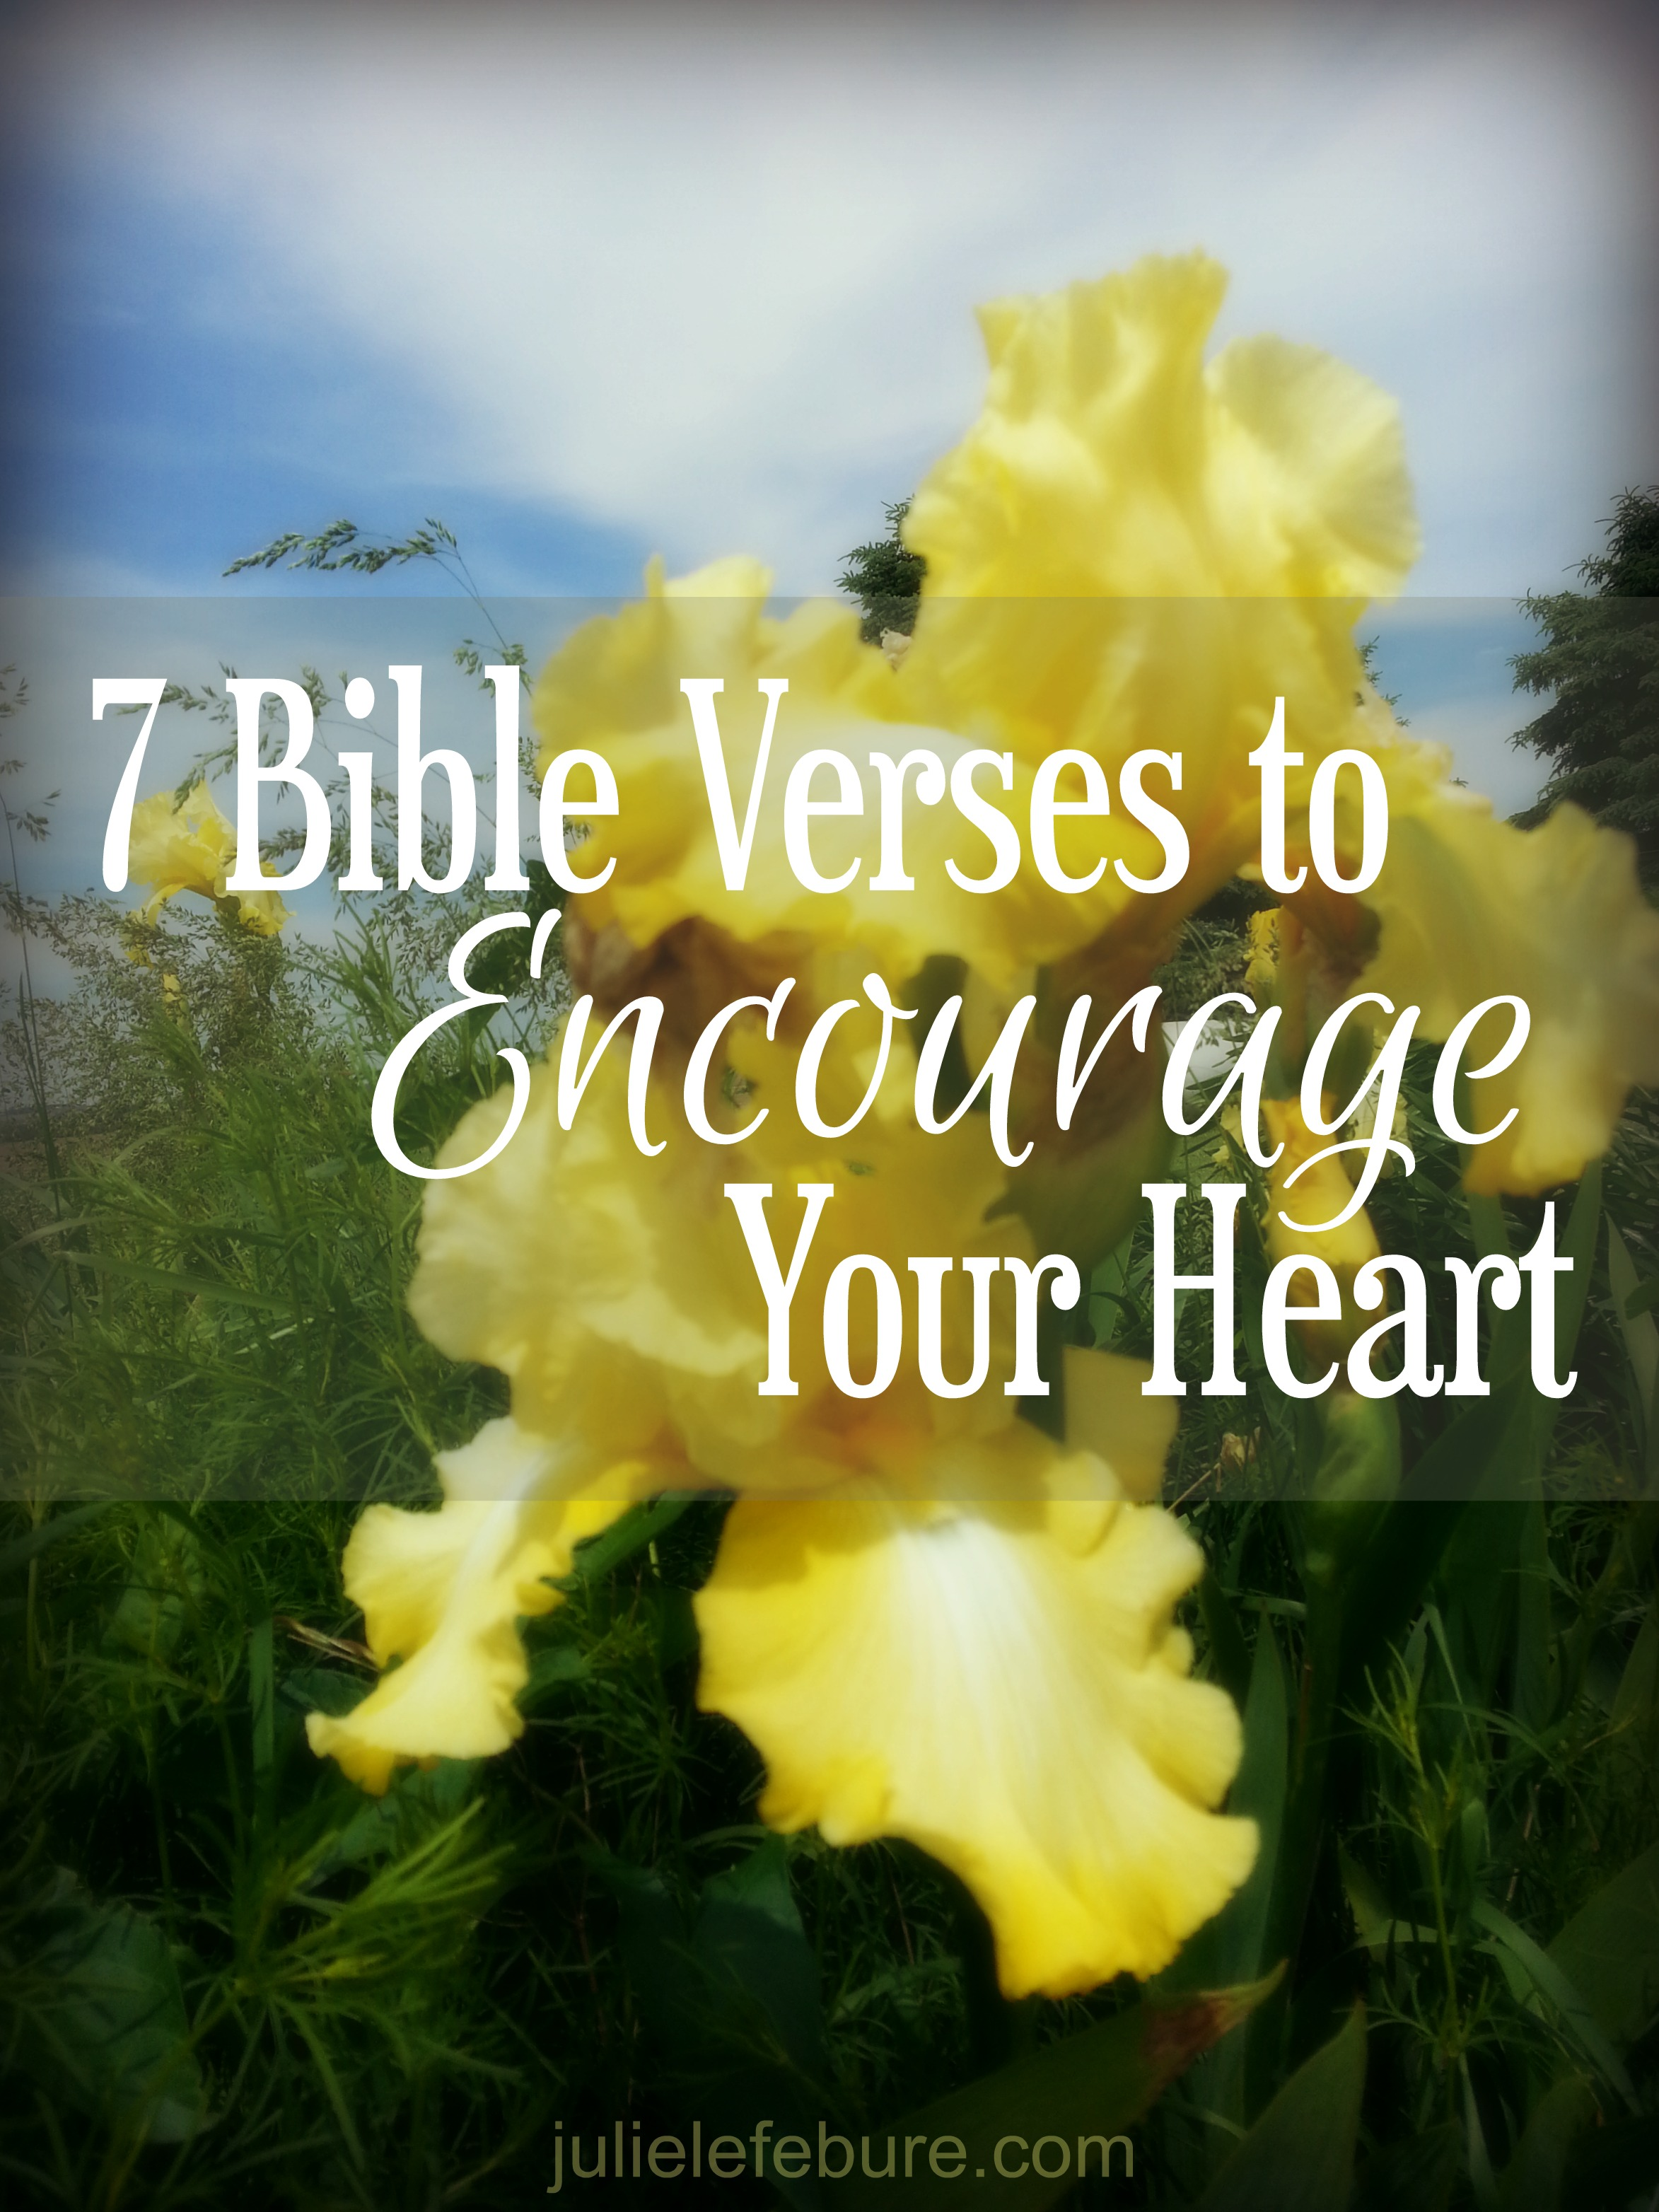 7 Bible Verses To Encourage Your Heart Julie Lefebure